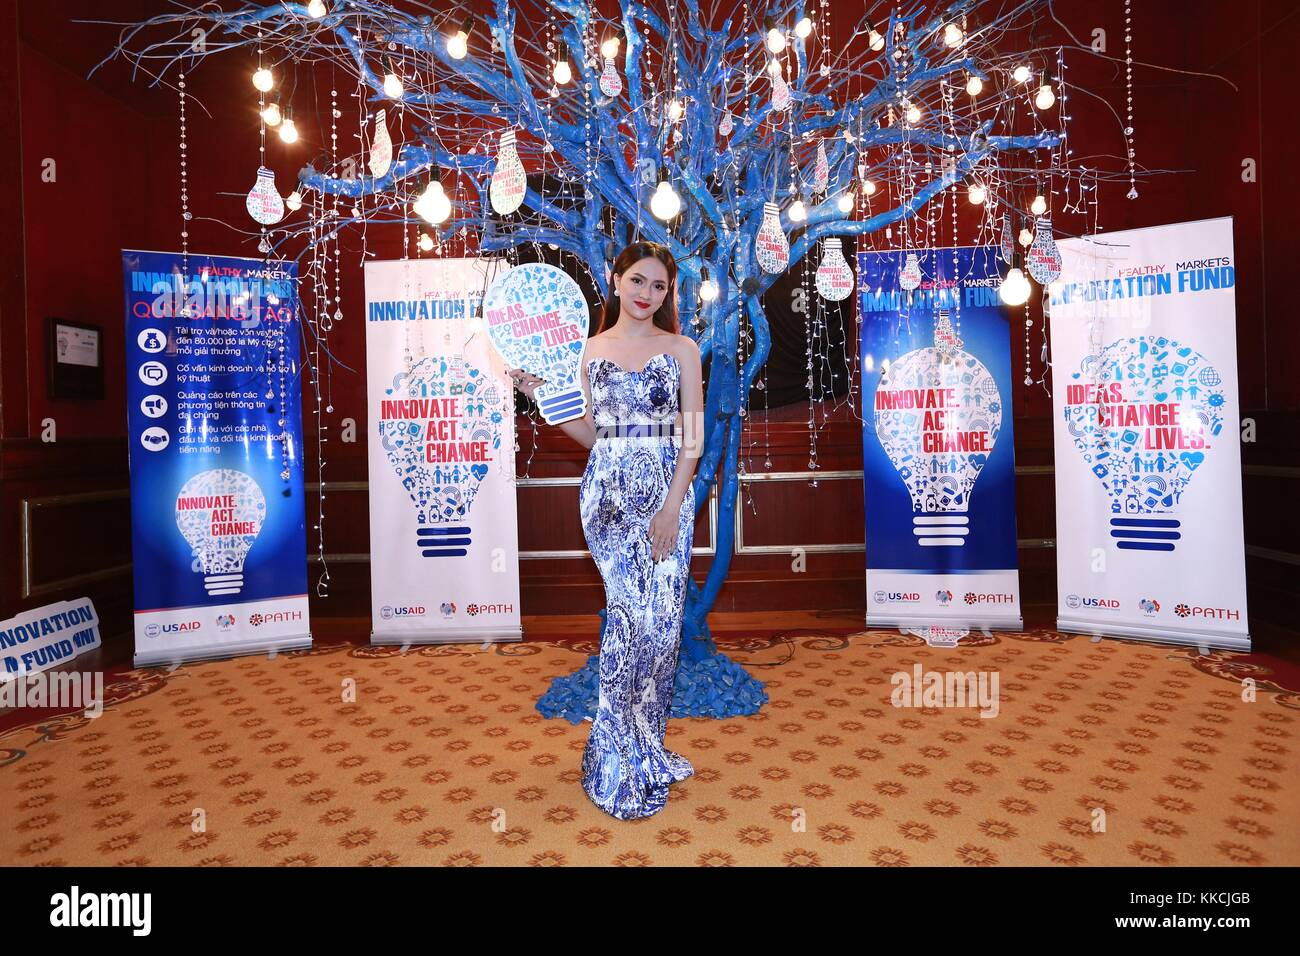 Huong Giang Idol, a famous transgender singer in Vietnam, attends a ceremony and shows her support for an innovation - Stock Image